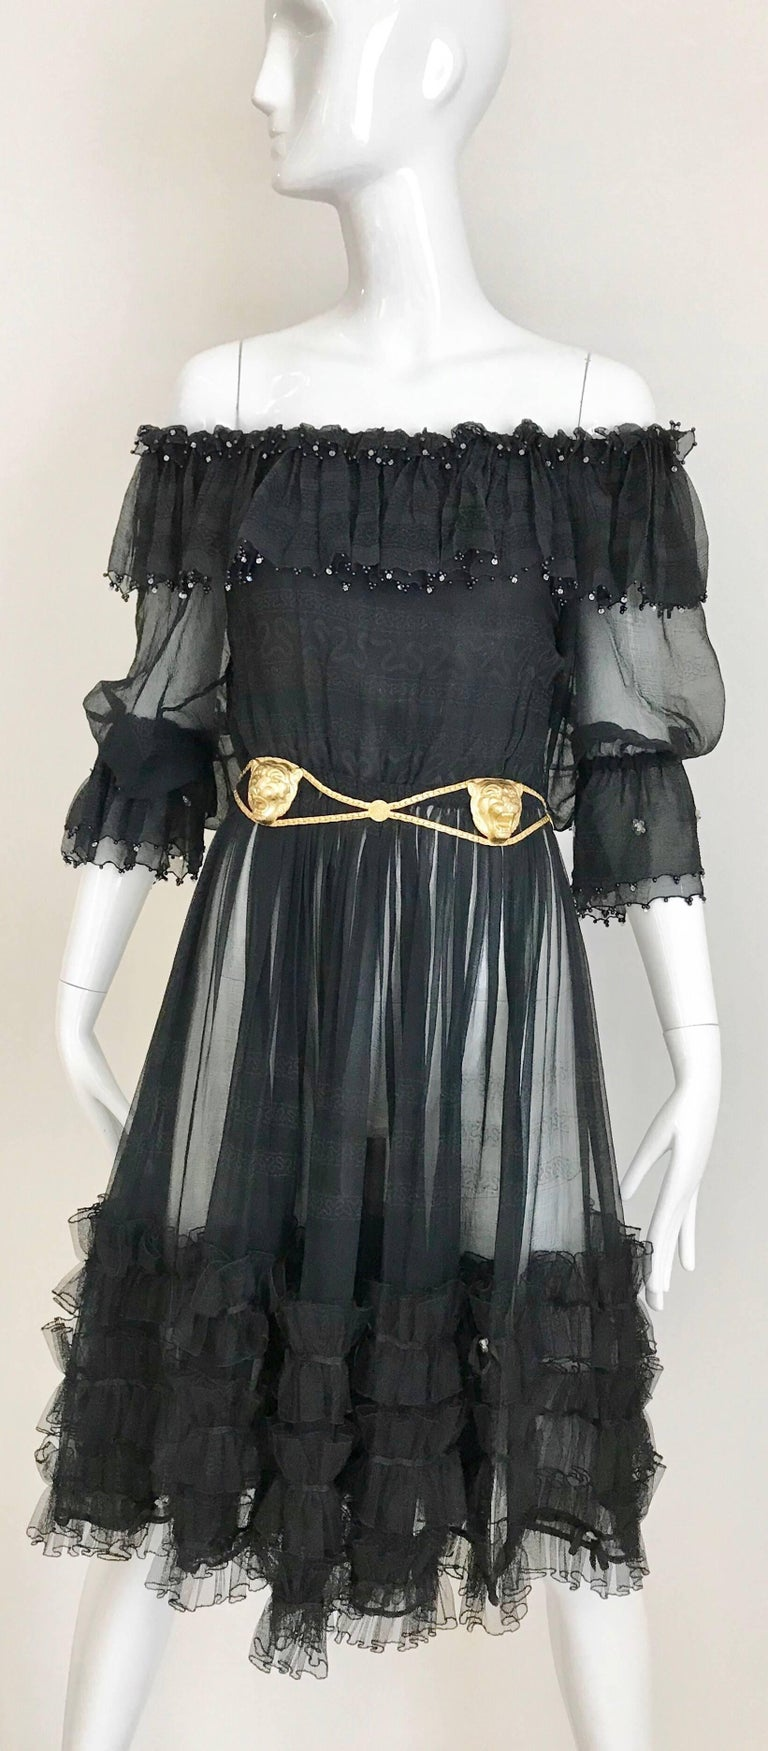 Zandra Rhodes Vintage Black Silk Cocktail Dress In Excellent Condition For Sale In Beverly Hills, CA